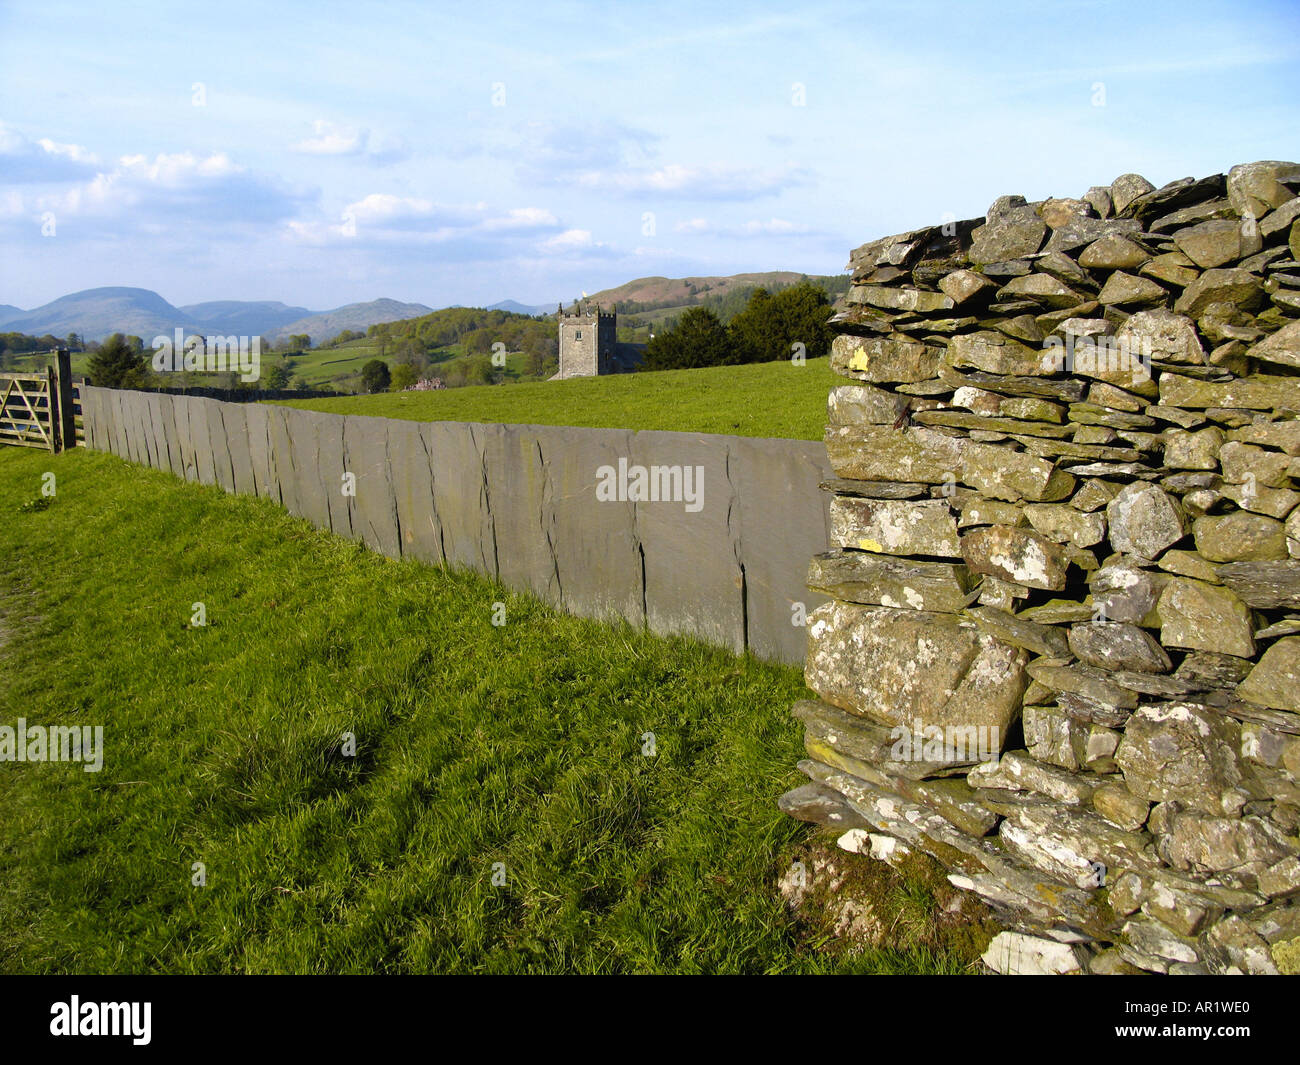 Natural material for walling - Stock Image